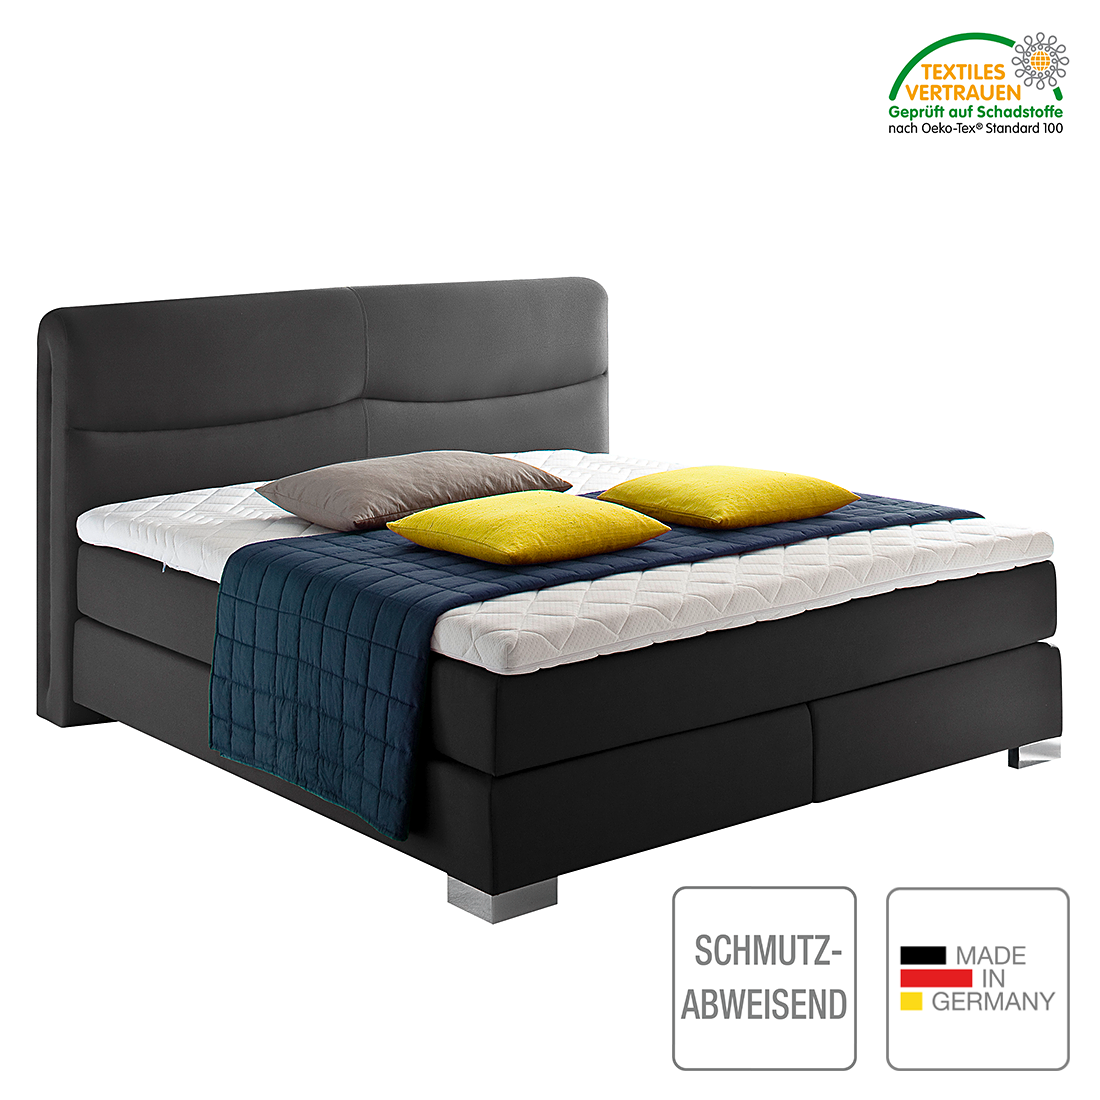 parkett reparatur hamburg ihr profi fr standard und aus. Black Bedroom Furniture Sets. Home Design Ideas